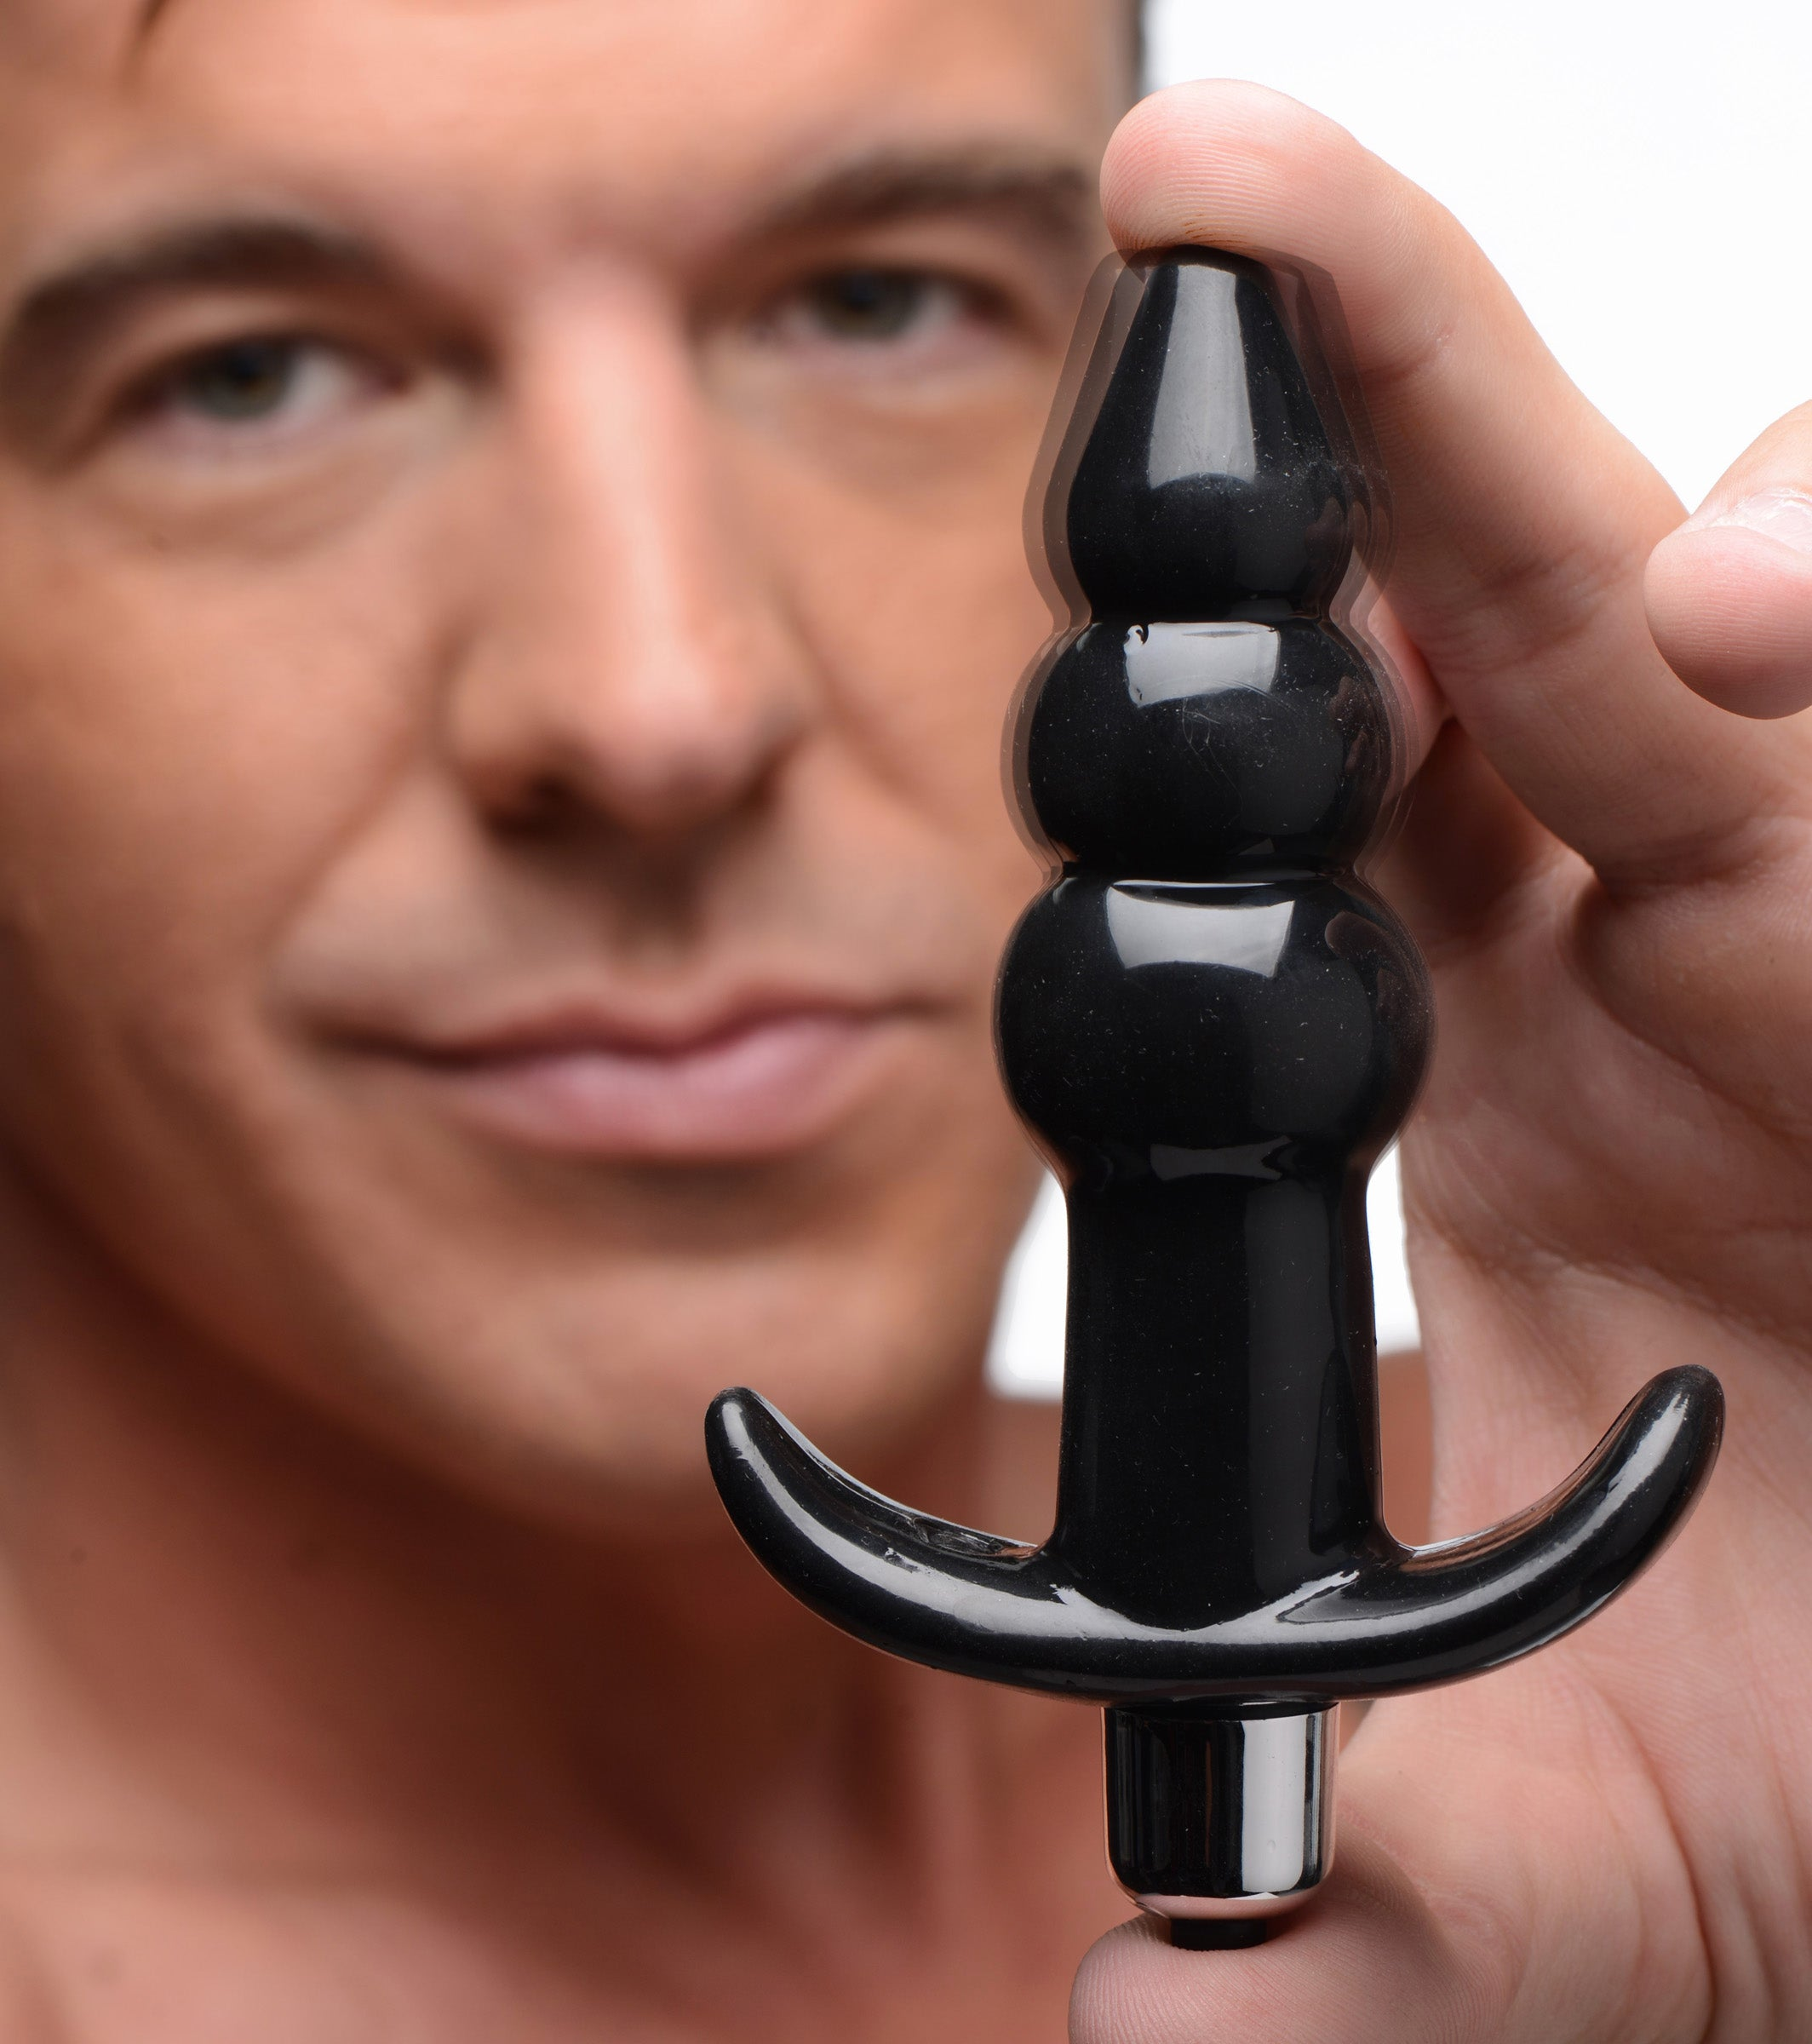 Ribbed Vibrating Butt Plug - Black